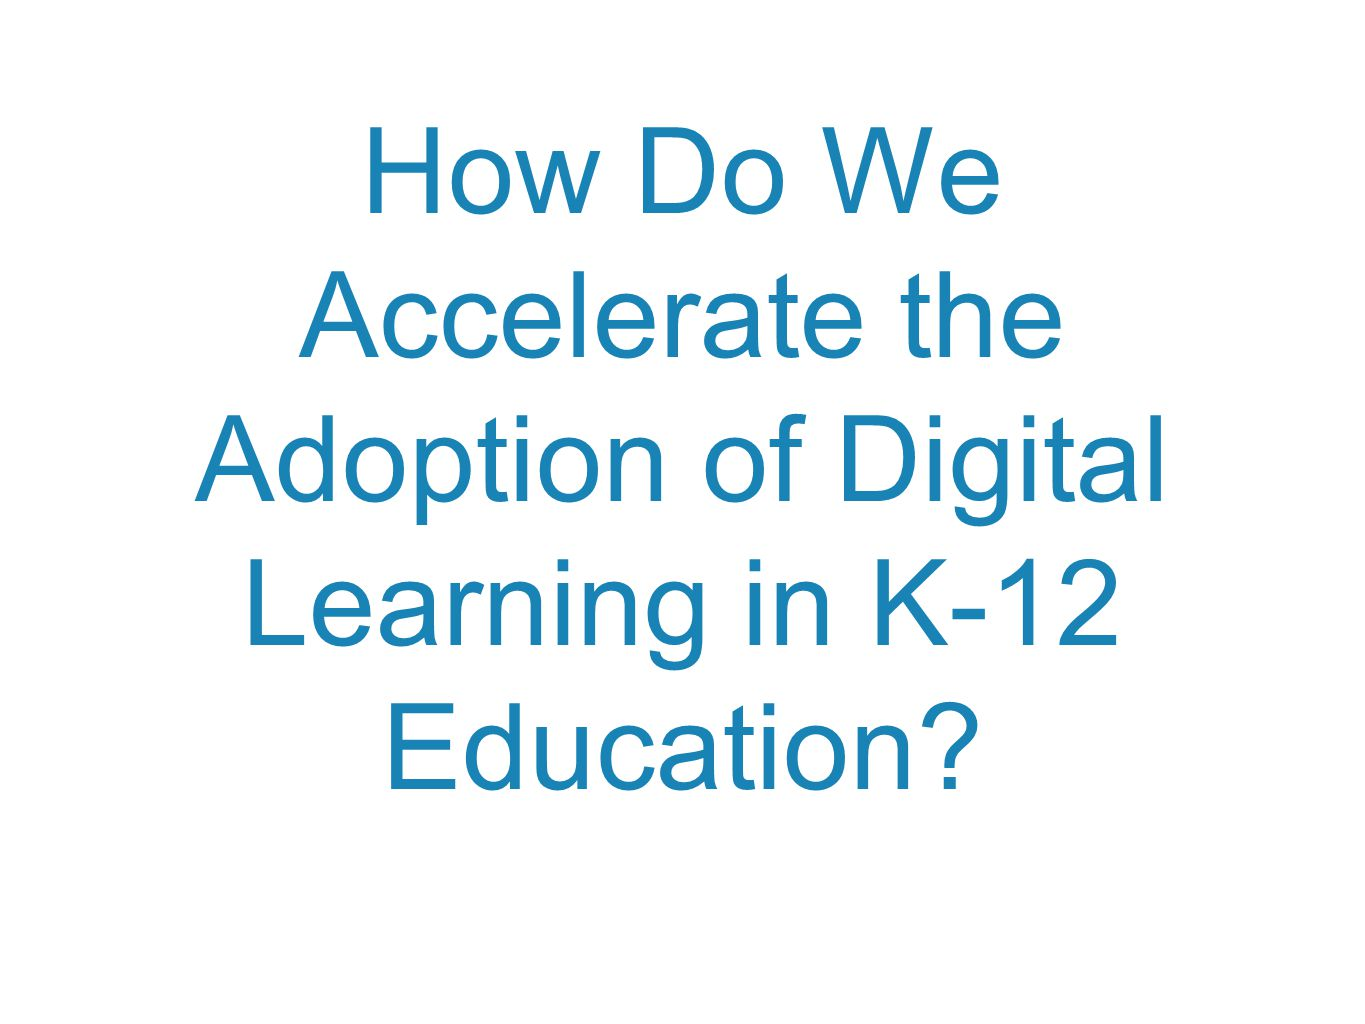 How Do We Accelerate the Adoption of Digital Learning in K-12 Education?